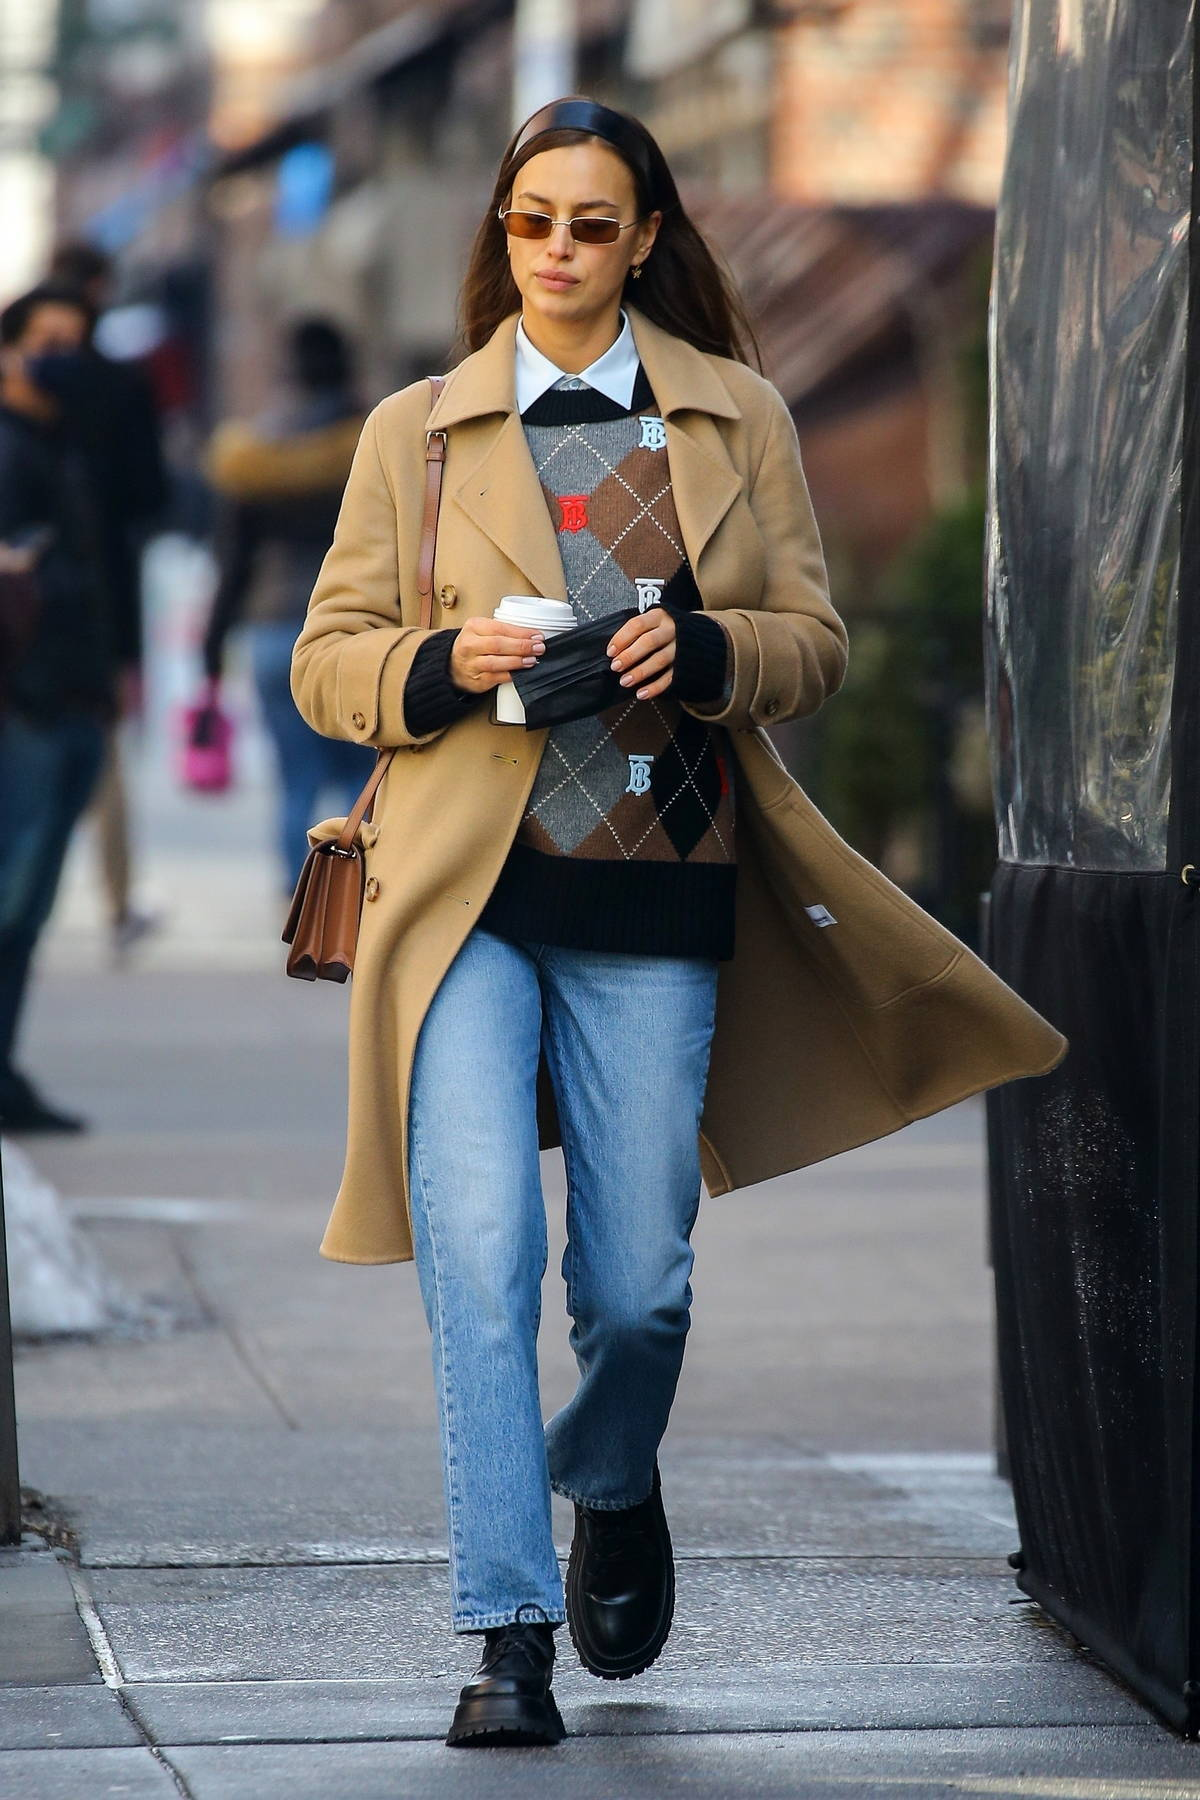 Irina Shayk looks stylish in a Burberry sweater with a beige coat while out running errands in New York City